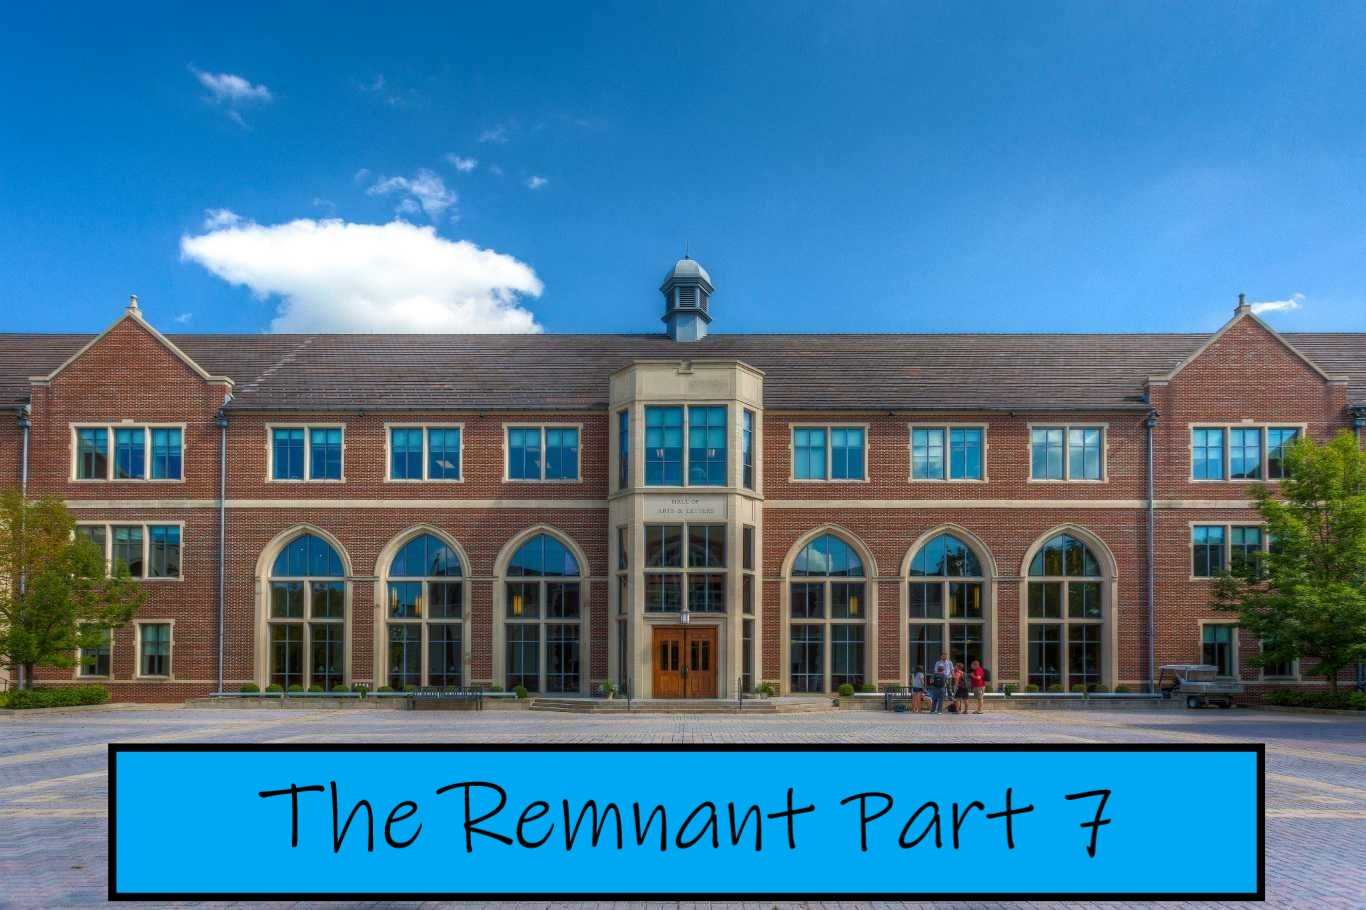 The Remnant Part 7